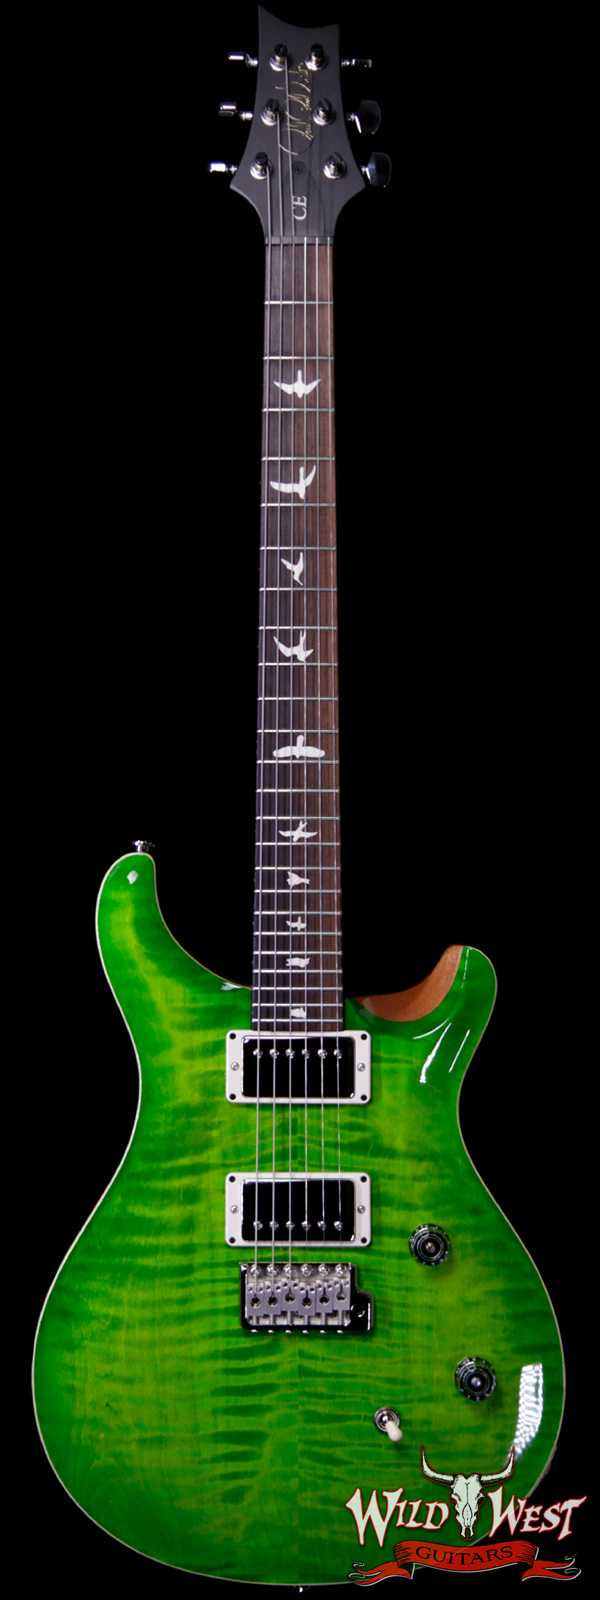 Paul Reed Smith PRS Wild West Guitars Special Run CE 24 Flame Top Painted Neck 57/08 Pickups Eriza Verde 284840